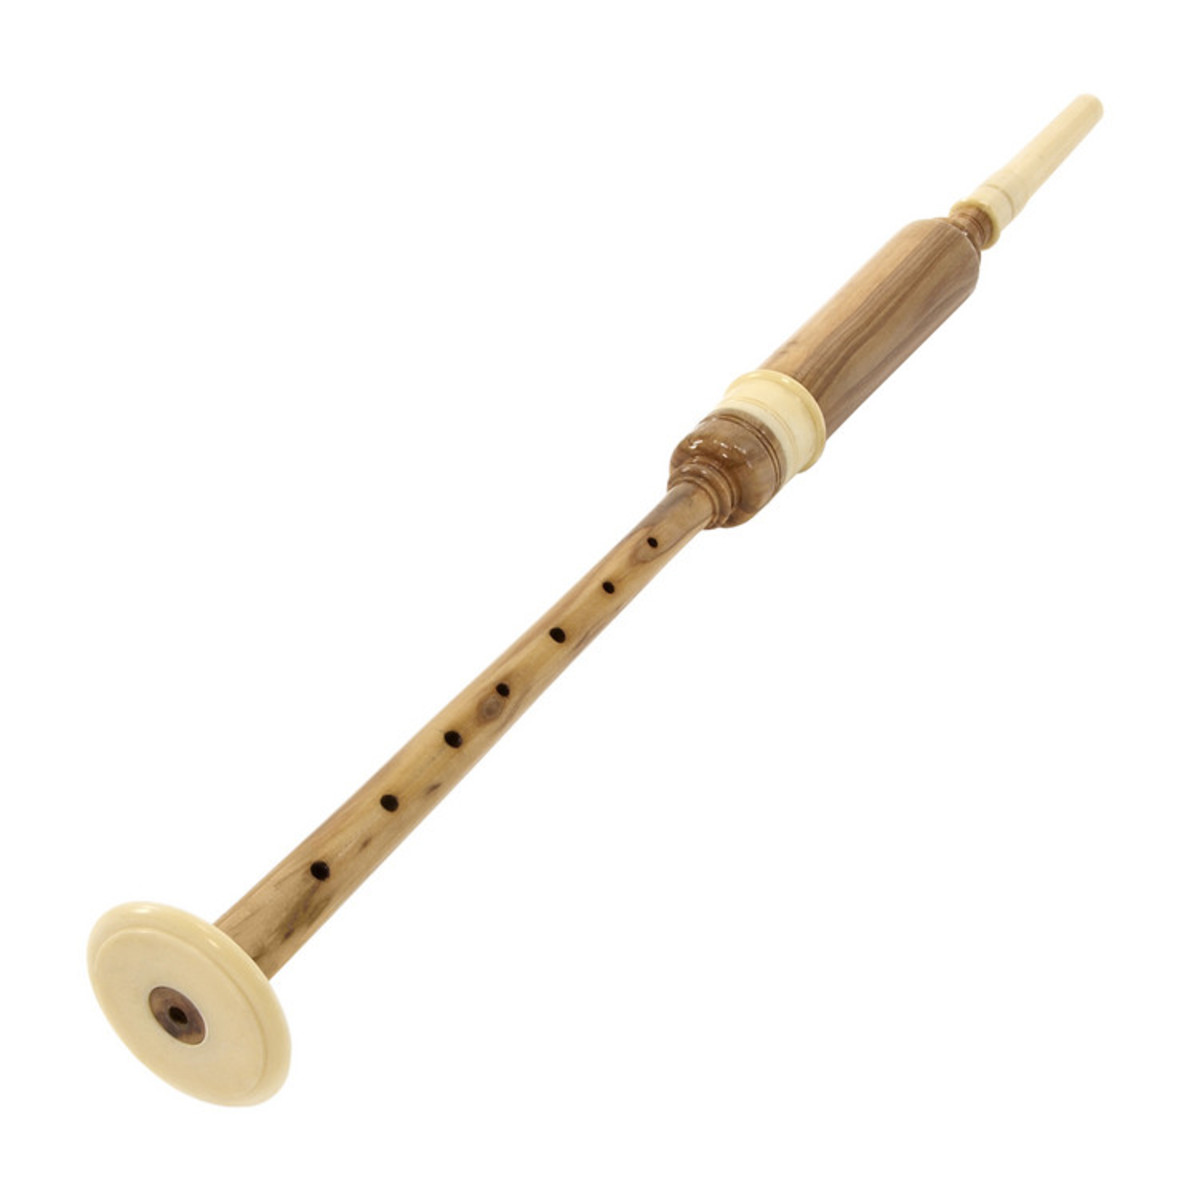 Image of Practice Chanter by Gear4music Cocuswood